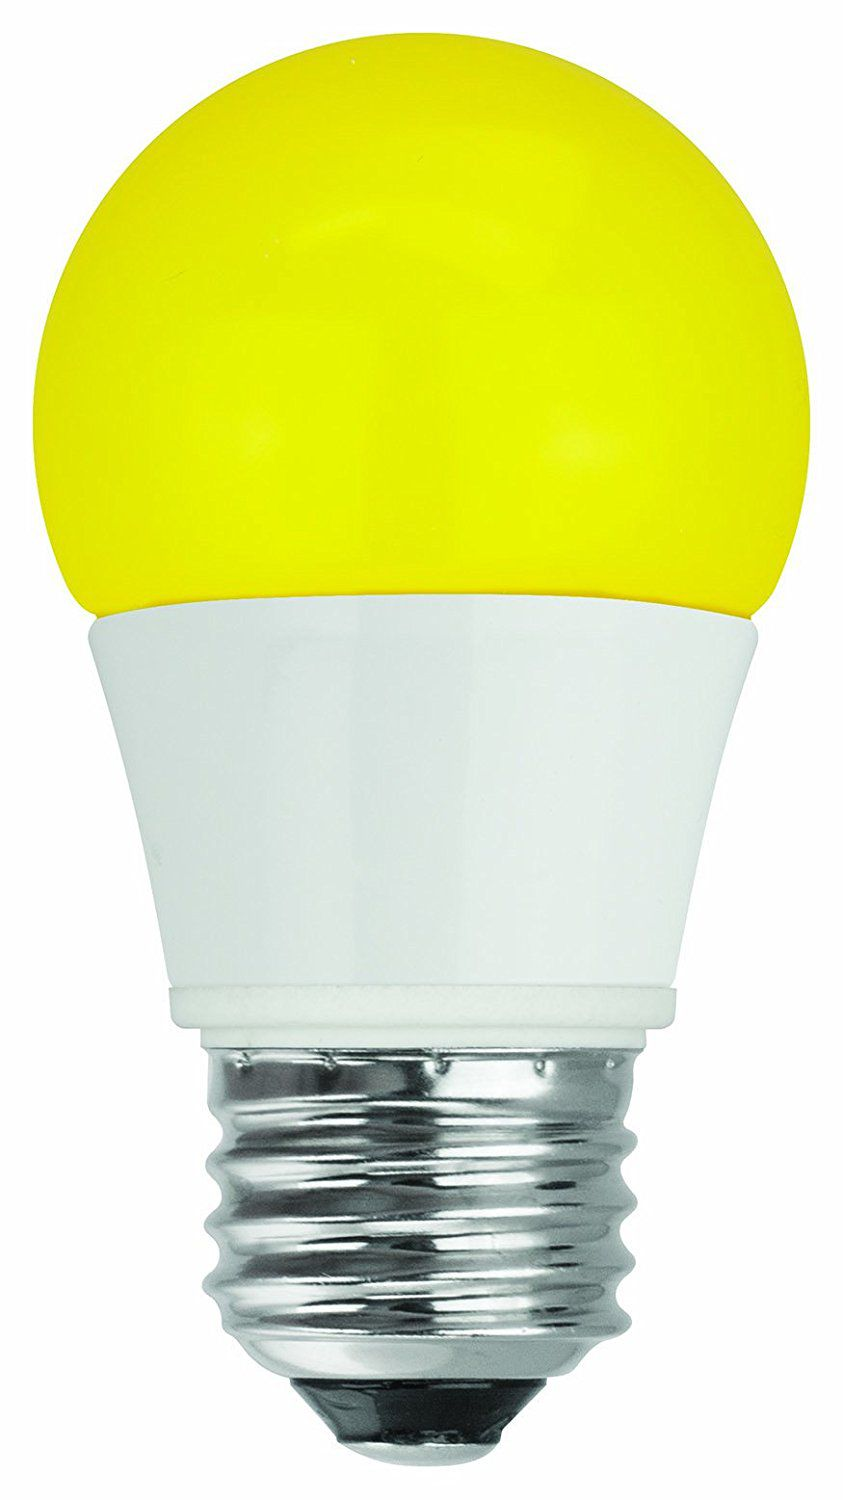 The 7 best outdoor light bulbs to buy in 2018 best overall lux led energy efficient light bulbs 6 pack mozeypictures Gallery